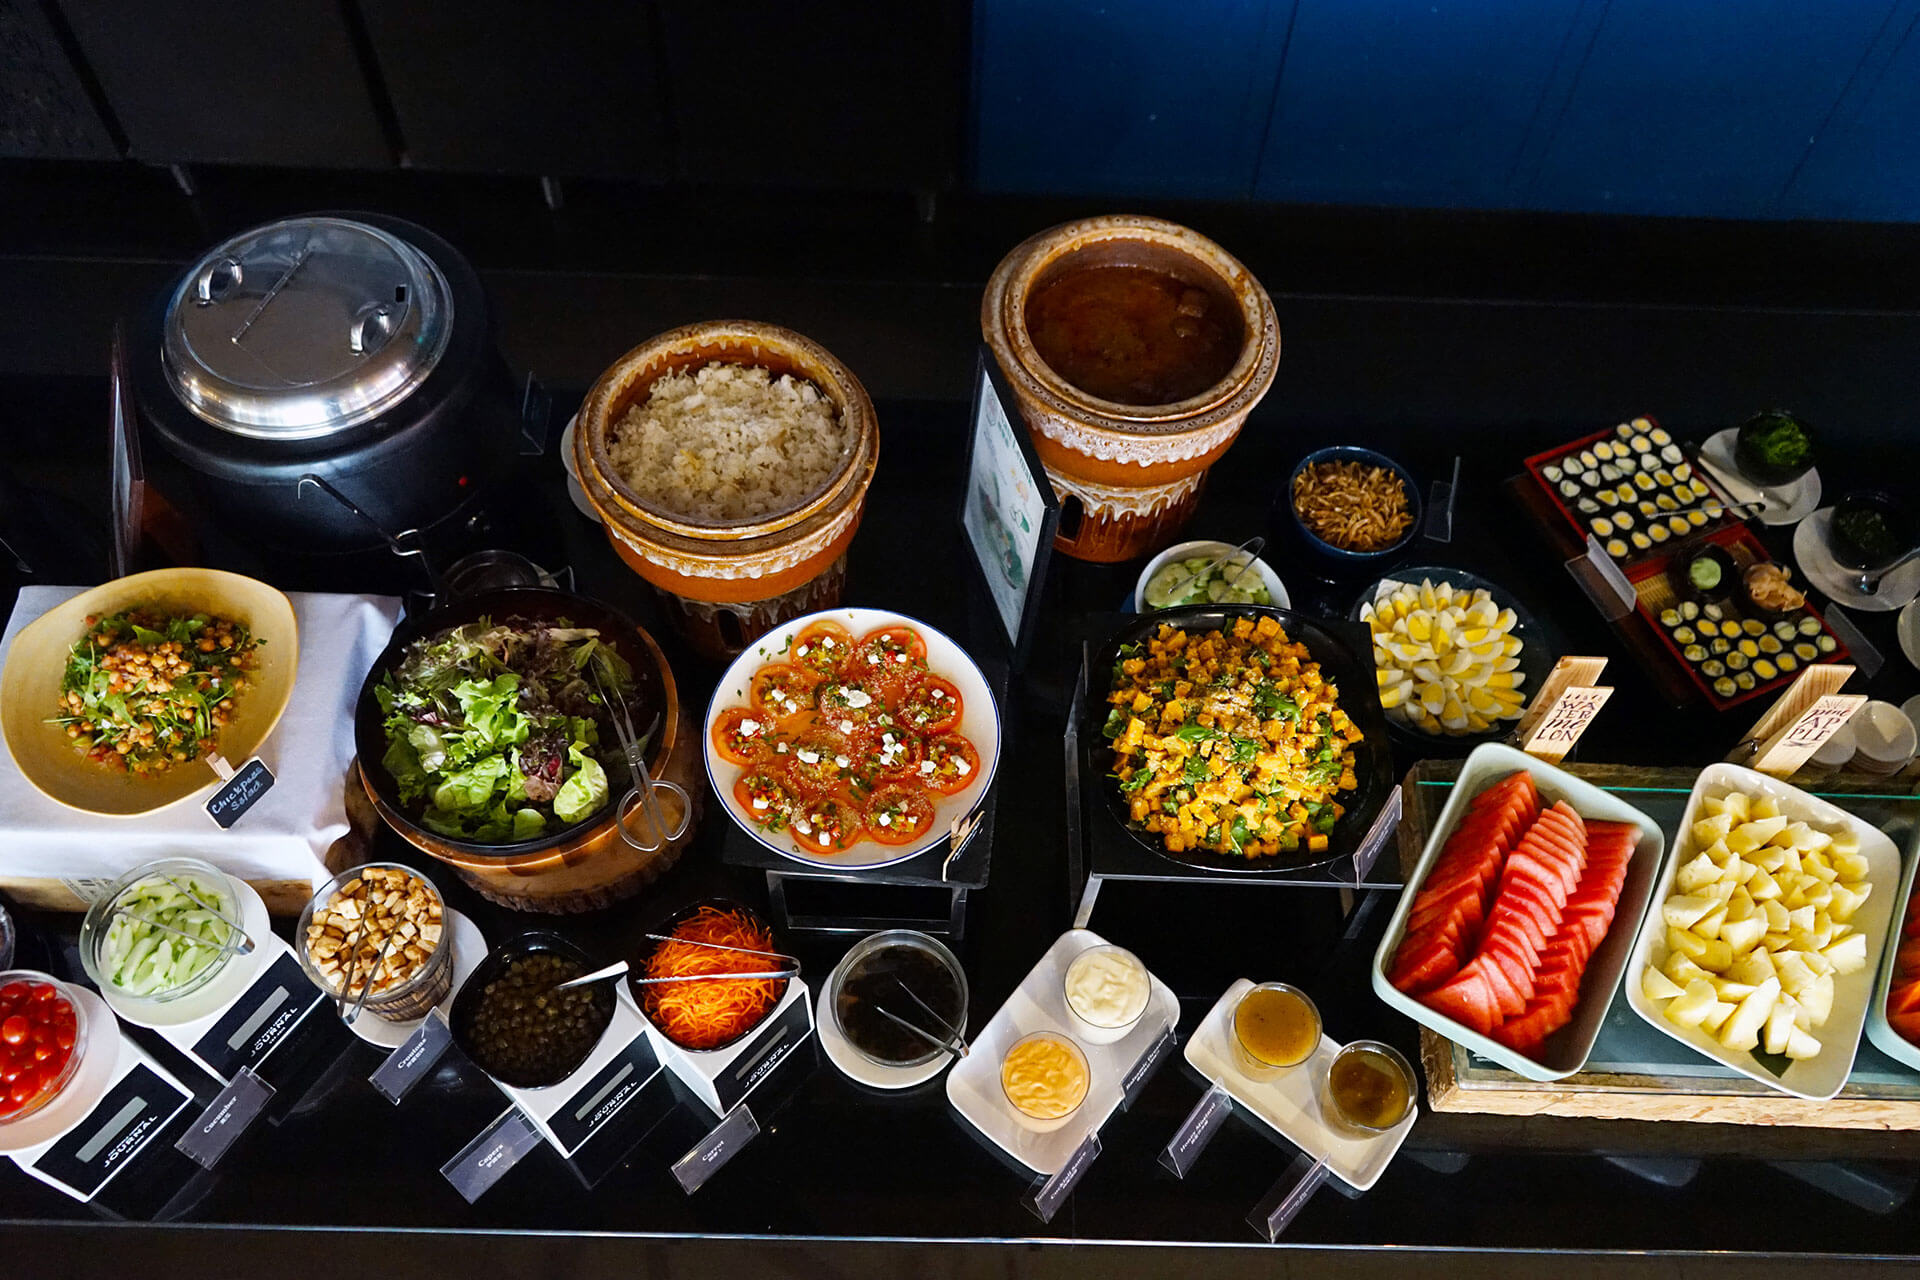 Breakfast buffet with savory & fruit options at KL Journal Hotel